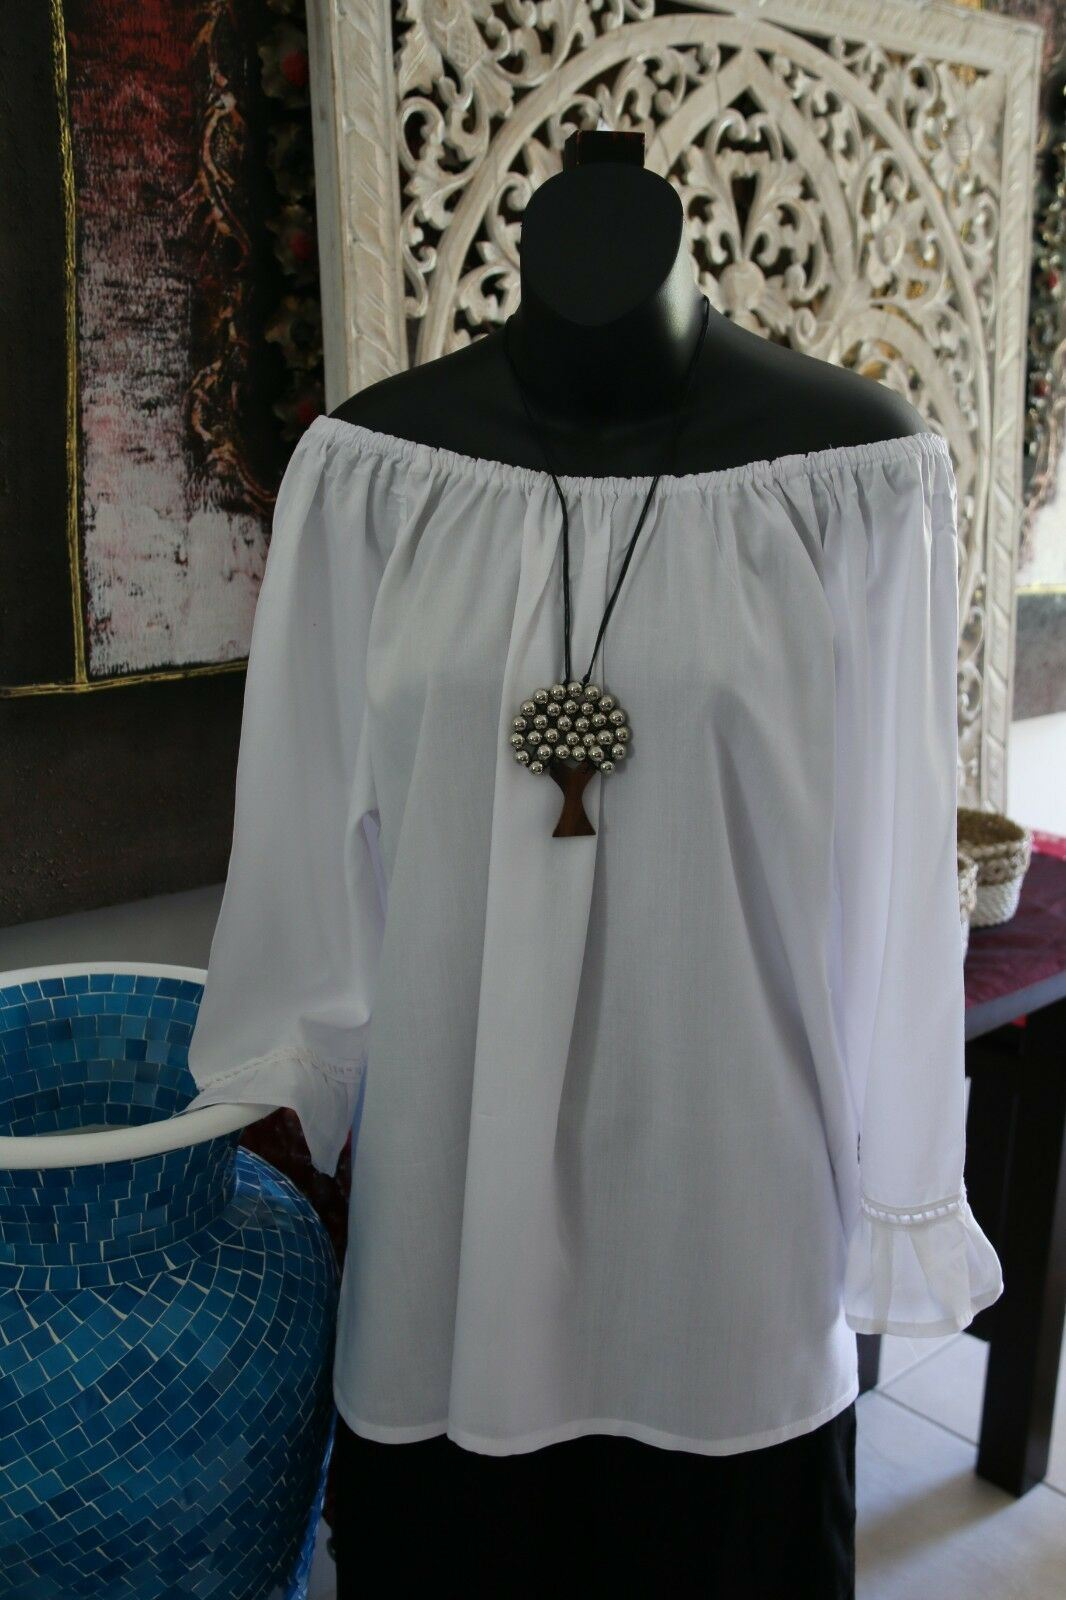 NEW Bali Peasant Style Top 4 Colours Avail - Very Pretty Top - Balinese Clothing